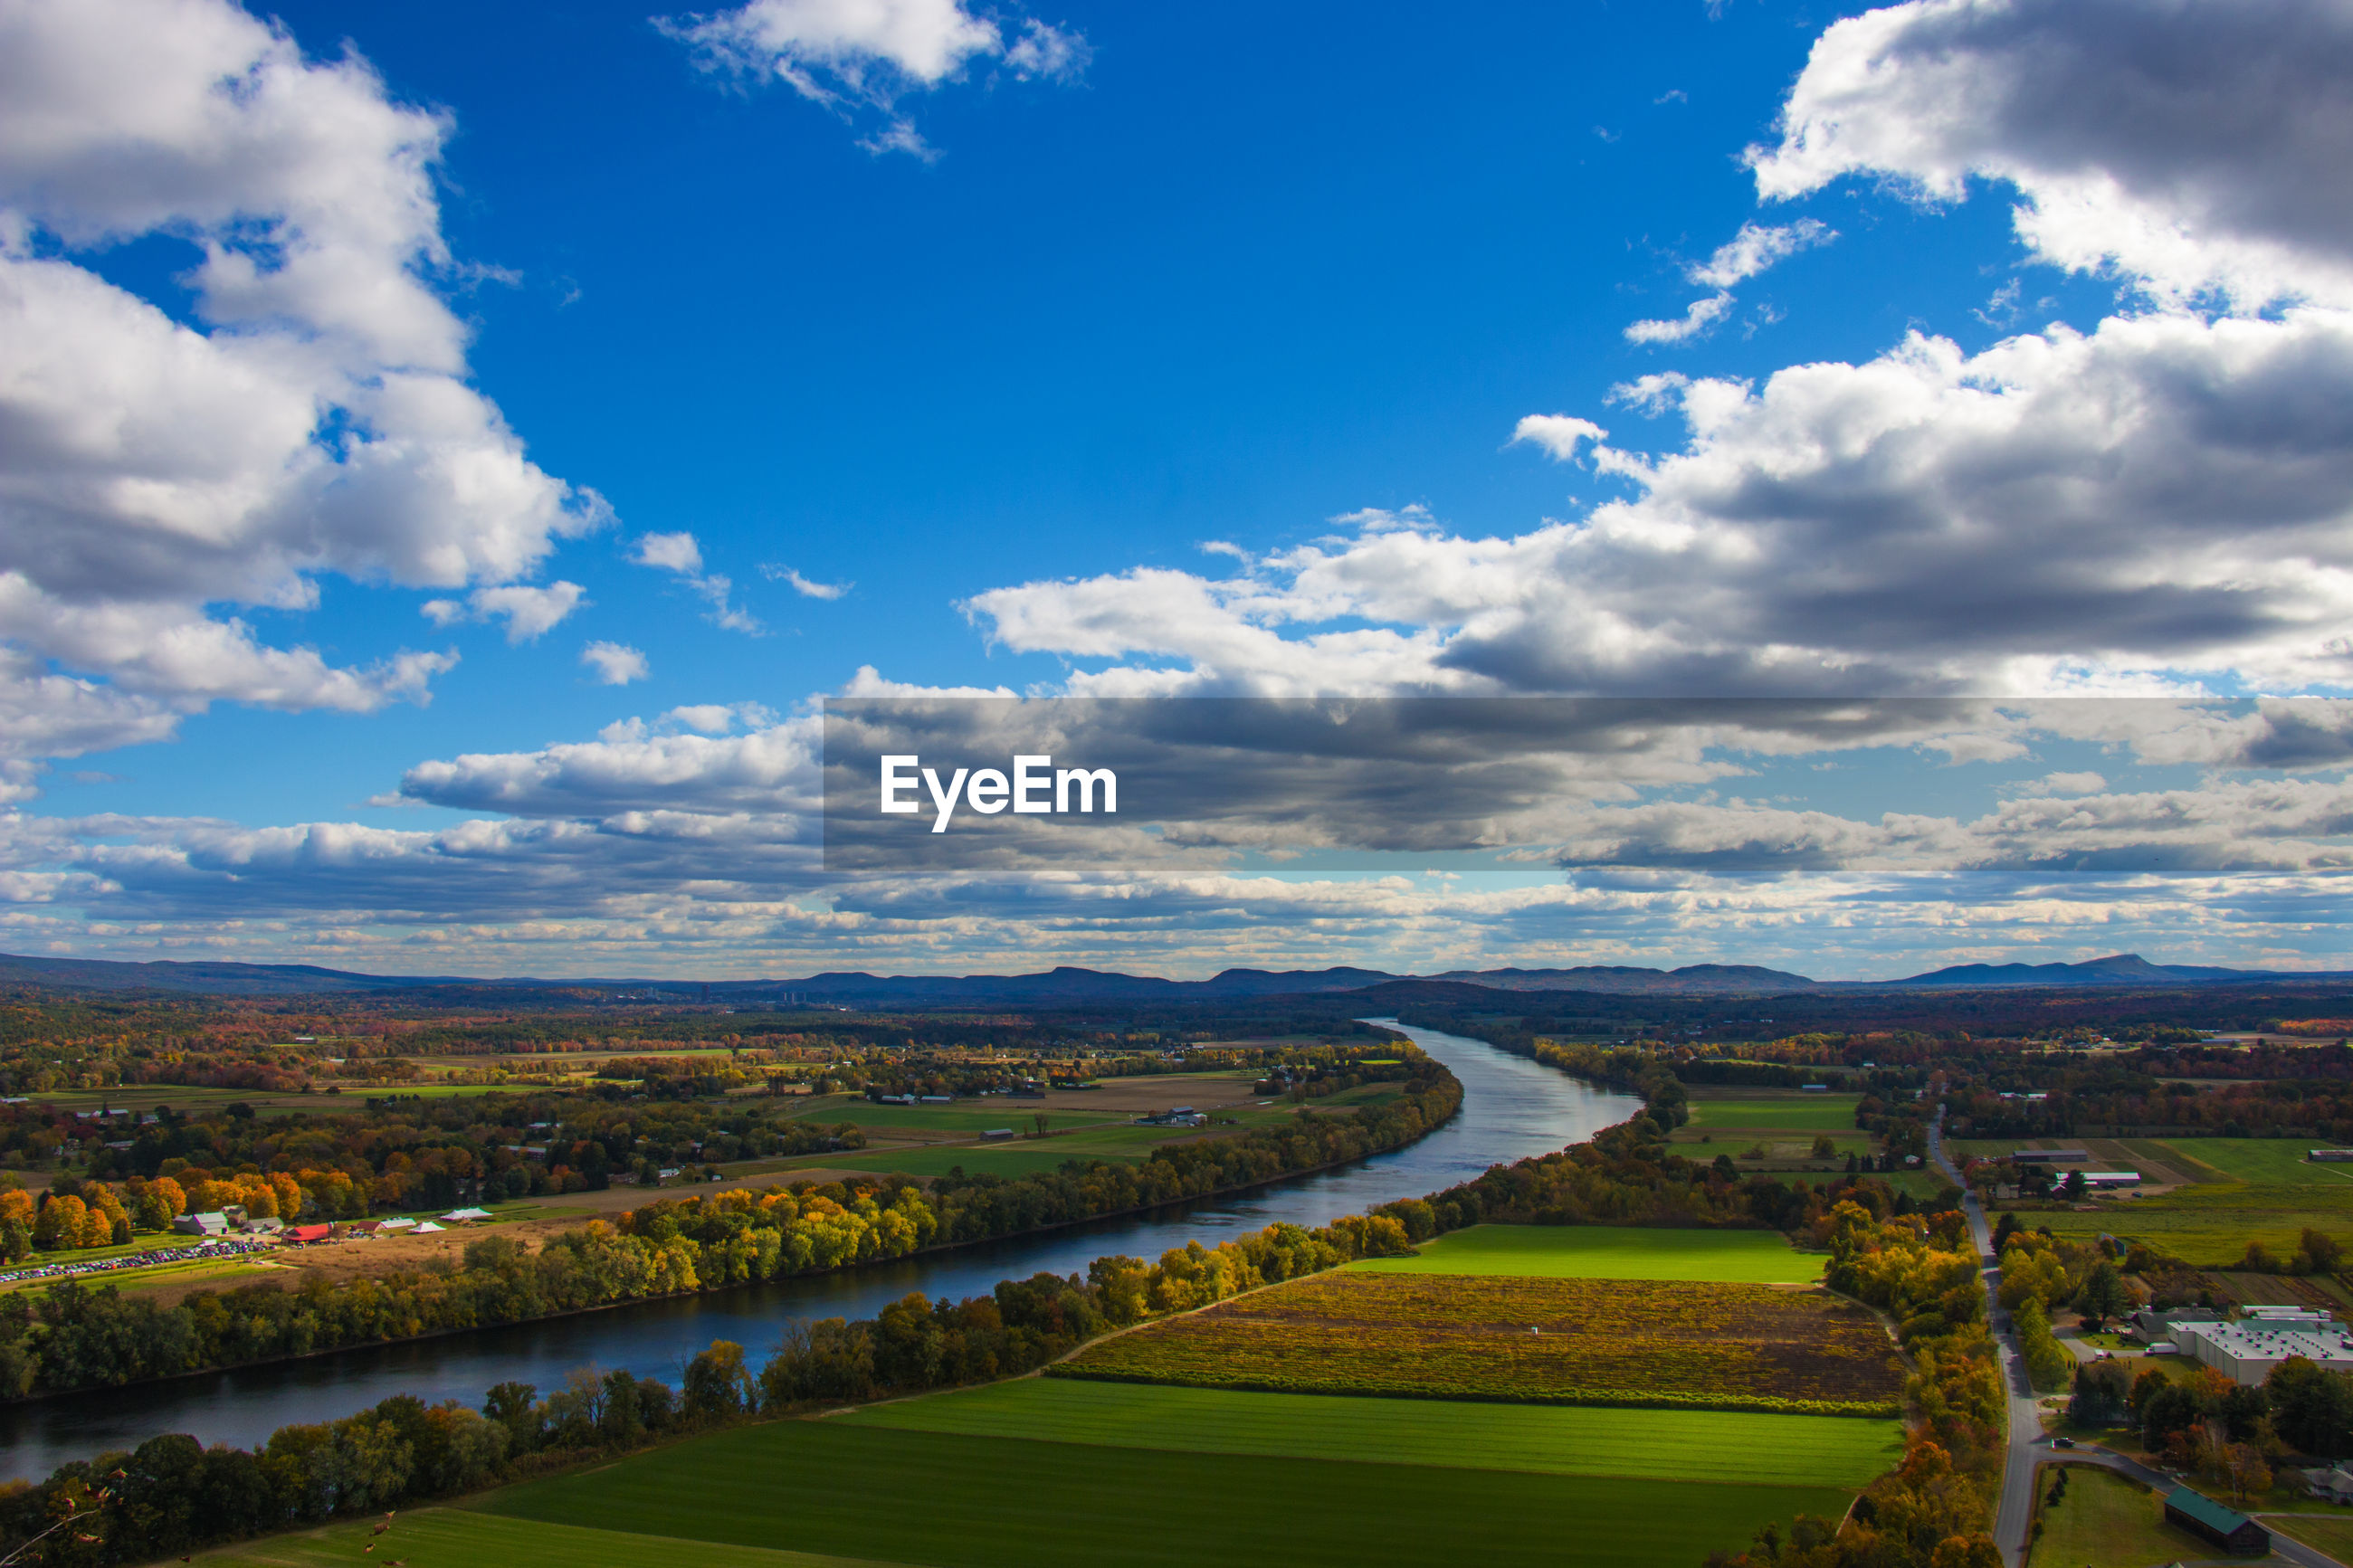 Scenic view of river amidst field against cloudy sky